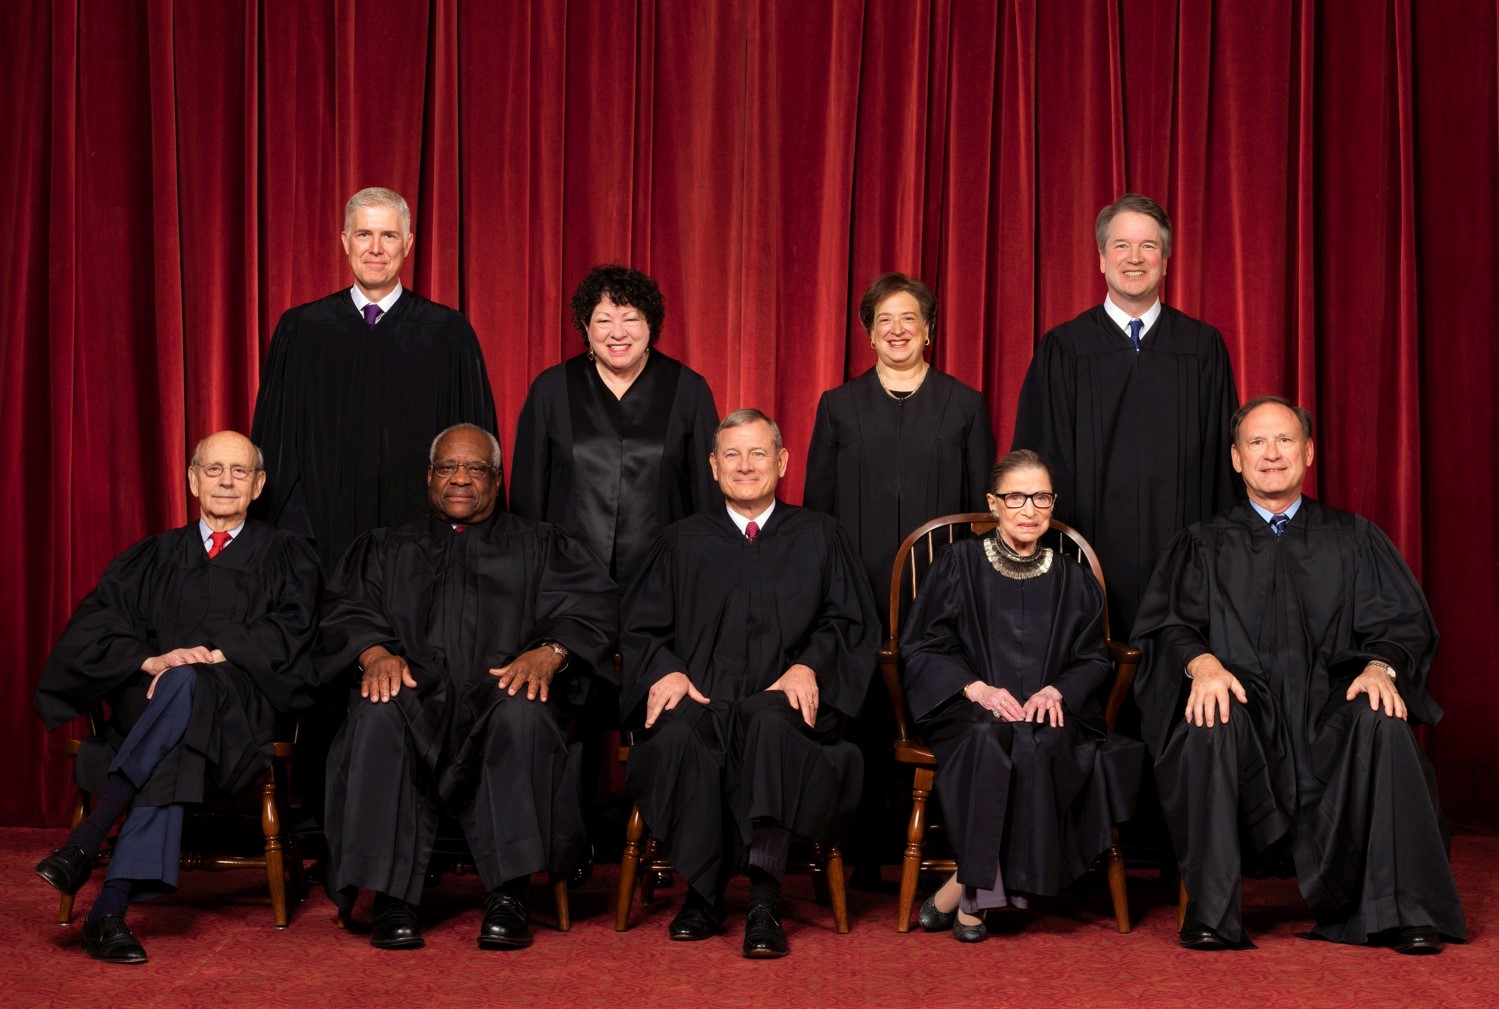 US Supreme Court Justices June 2019 gerrymandering decision:  Front row, left to right: Associate Justice Stephen G. Breyer, Associate Justice Clarence Thomas, Chief Justice John G. Roberts, Jr., Associate Justice Ruth Bader Ginsburg, Associate Justice Samuel A. Alito. Back row: Associate Justice Neil M. Gorsuch, Associate Justice Sonia Sotomayor, Associate Justice Elena Kagan, Associate Justice Brett M. Kavanaugh.. Credit: Fred Schilling, Collection of the Supreme Court of the United States